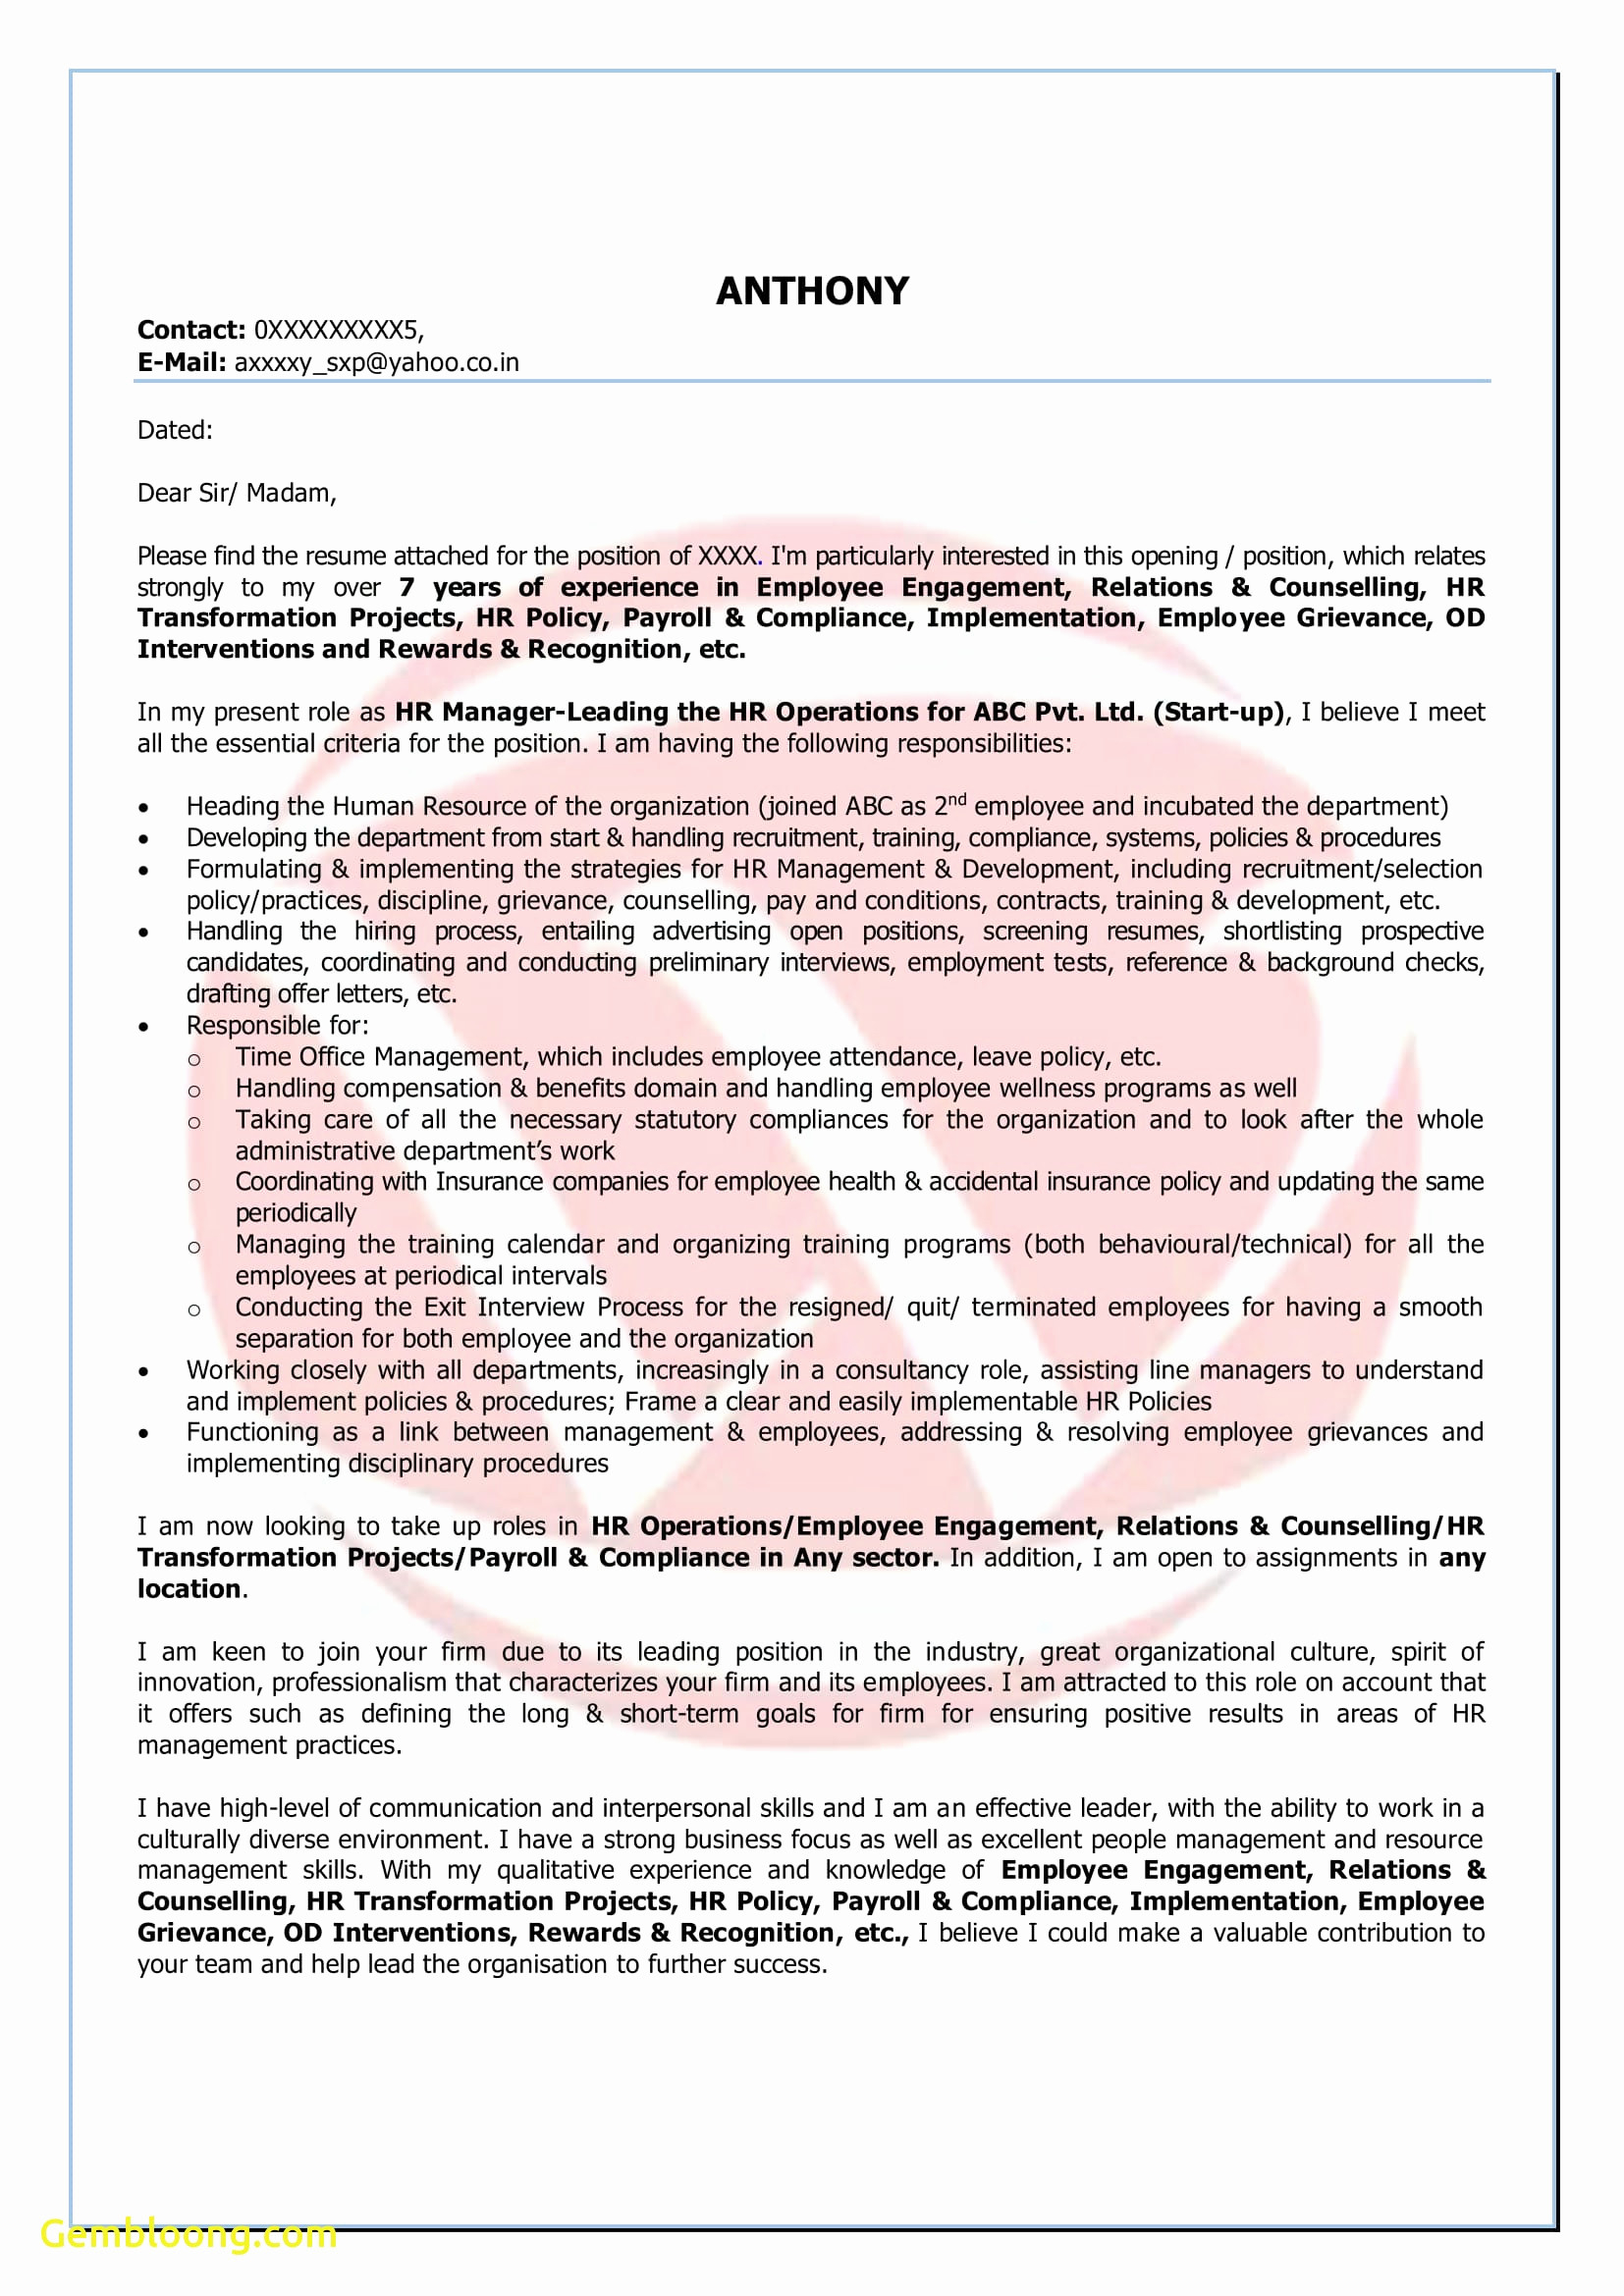 Startup Offer Letter Template - Fax Cover Letter Template Fresh Best Free Cover Letter format